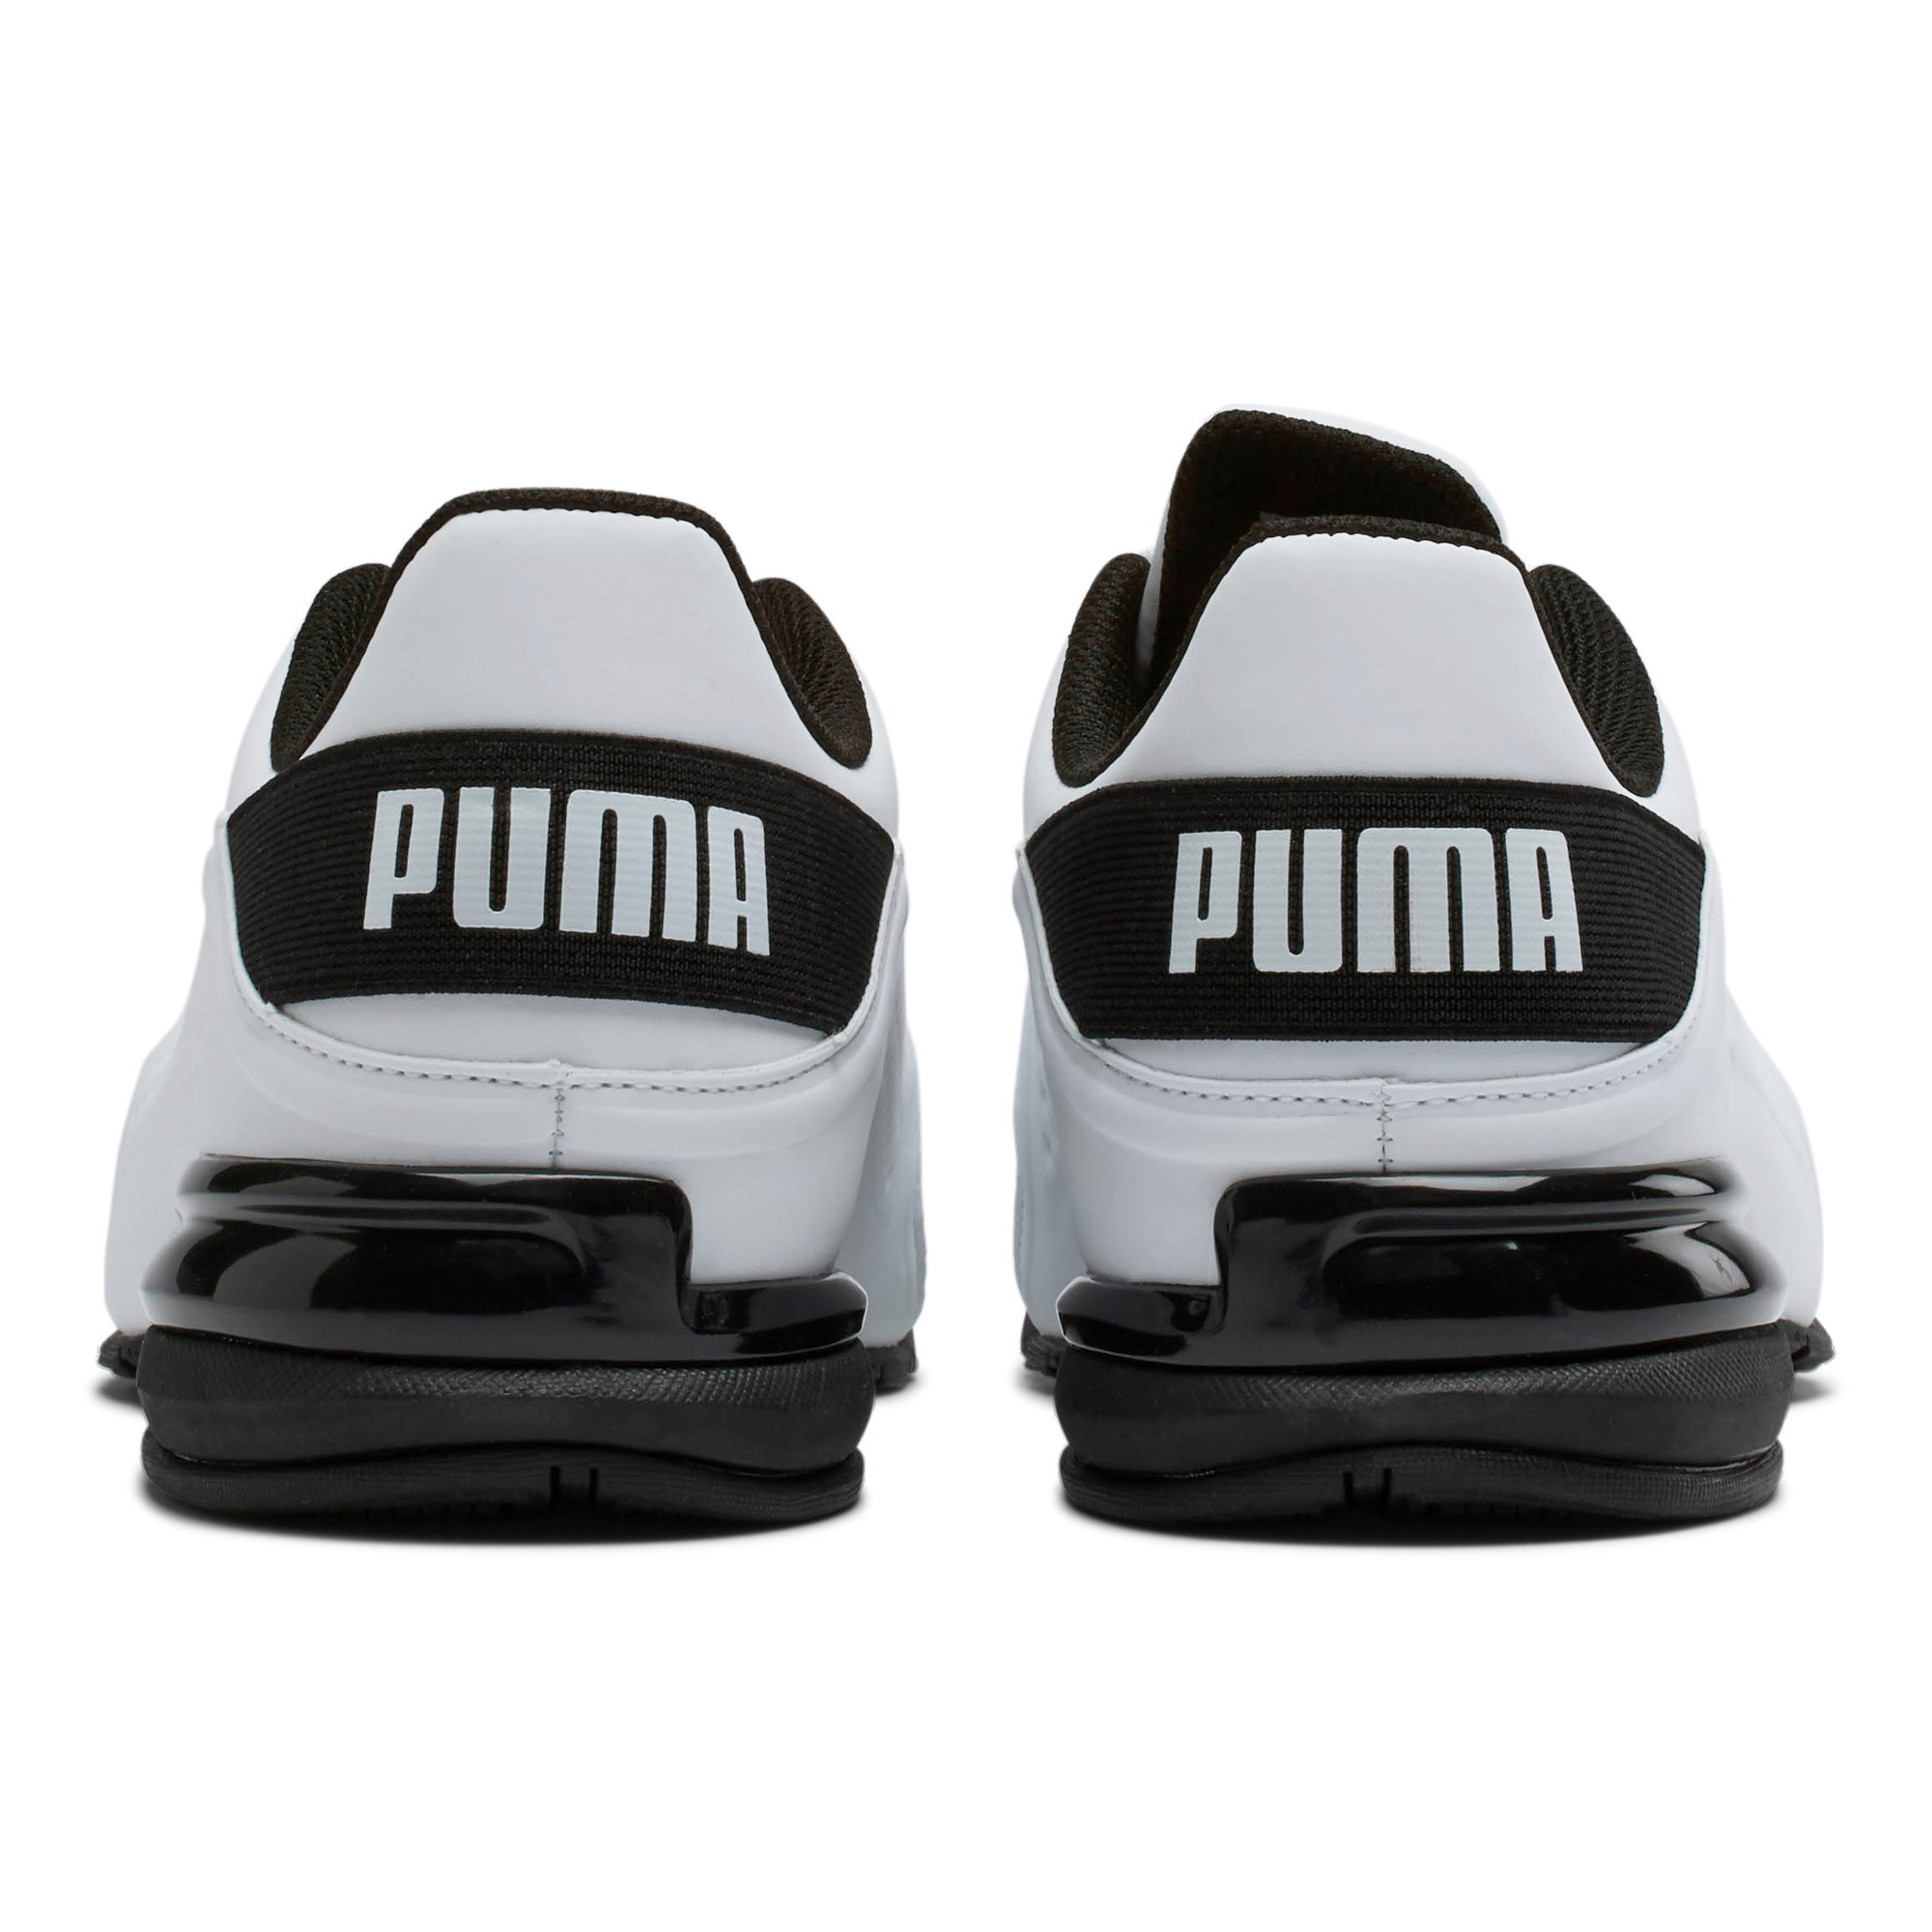 PUMA-Viz-Runner-Men-s-Running-Shoes-Men-Shoe-Running thumbnail 8